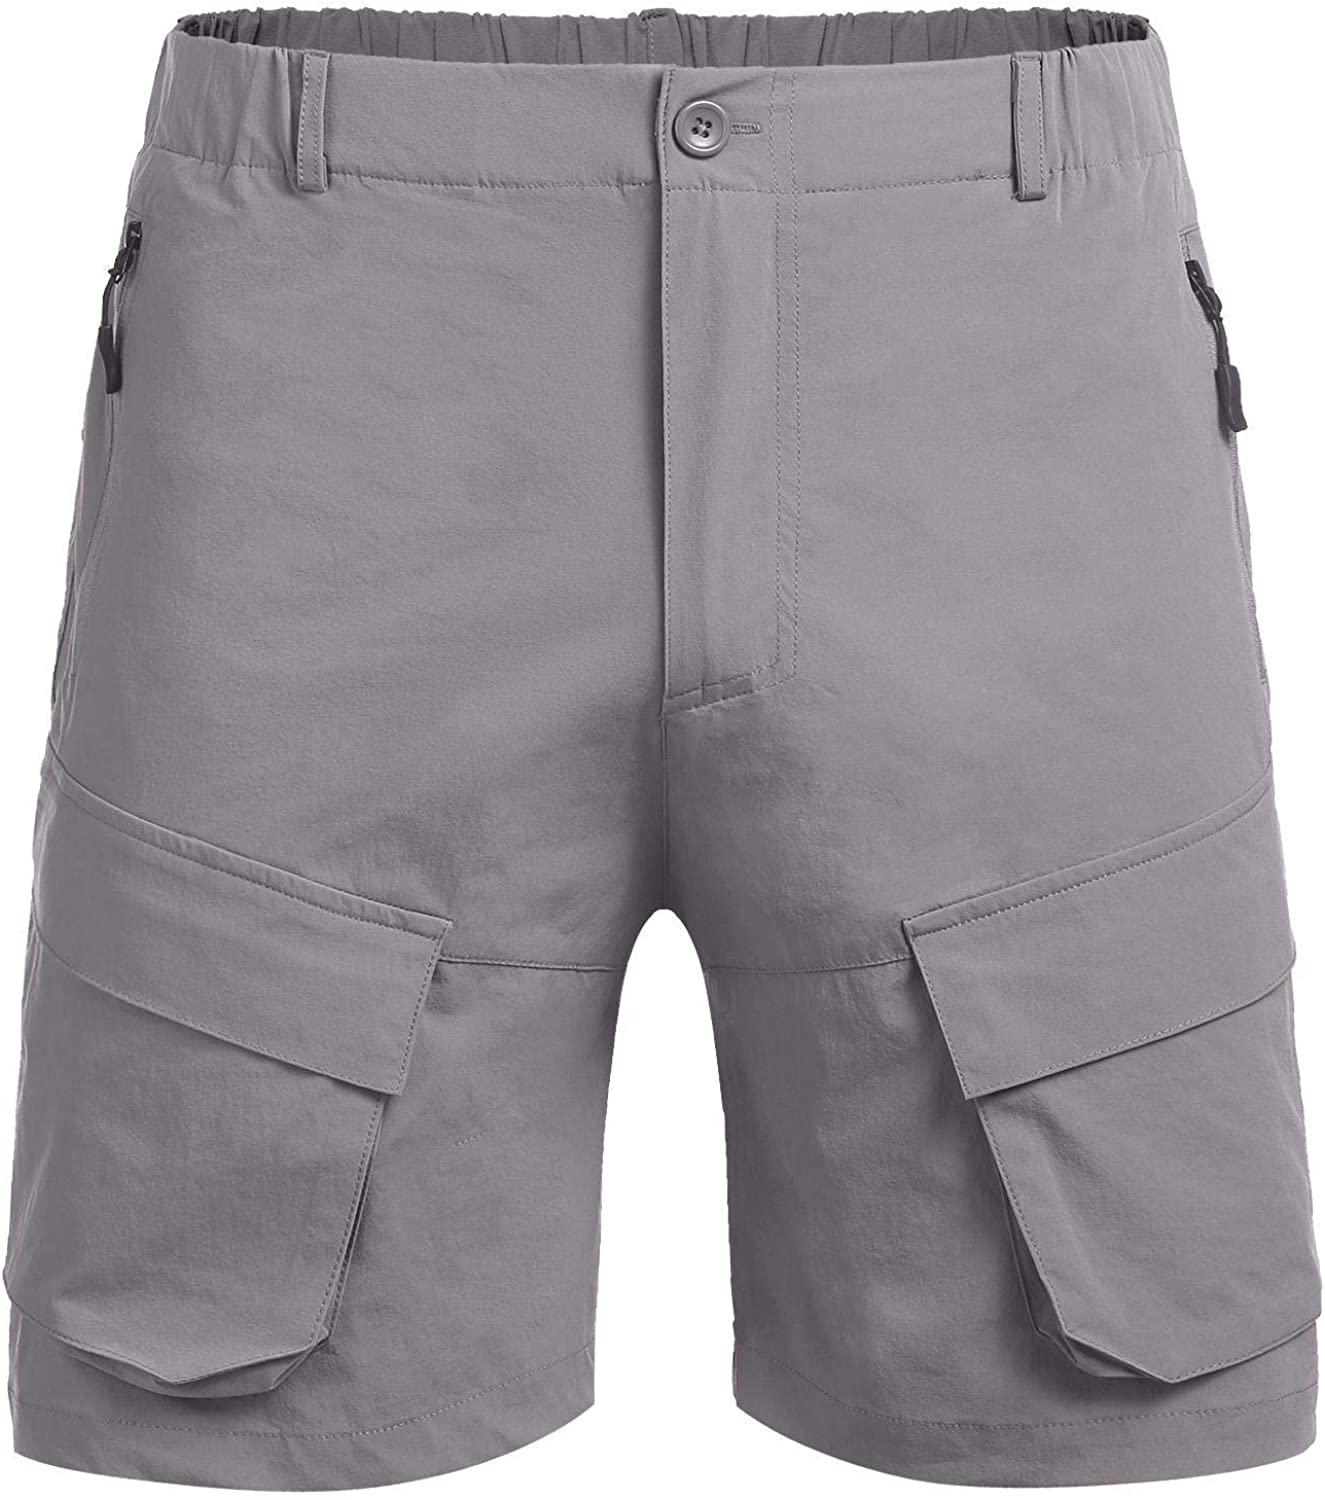 COOFANDY Mens Stretch Cargo Shorts Quick Dry Work Out Shorts for Outdoors Hiking Camping Travel